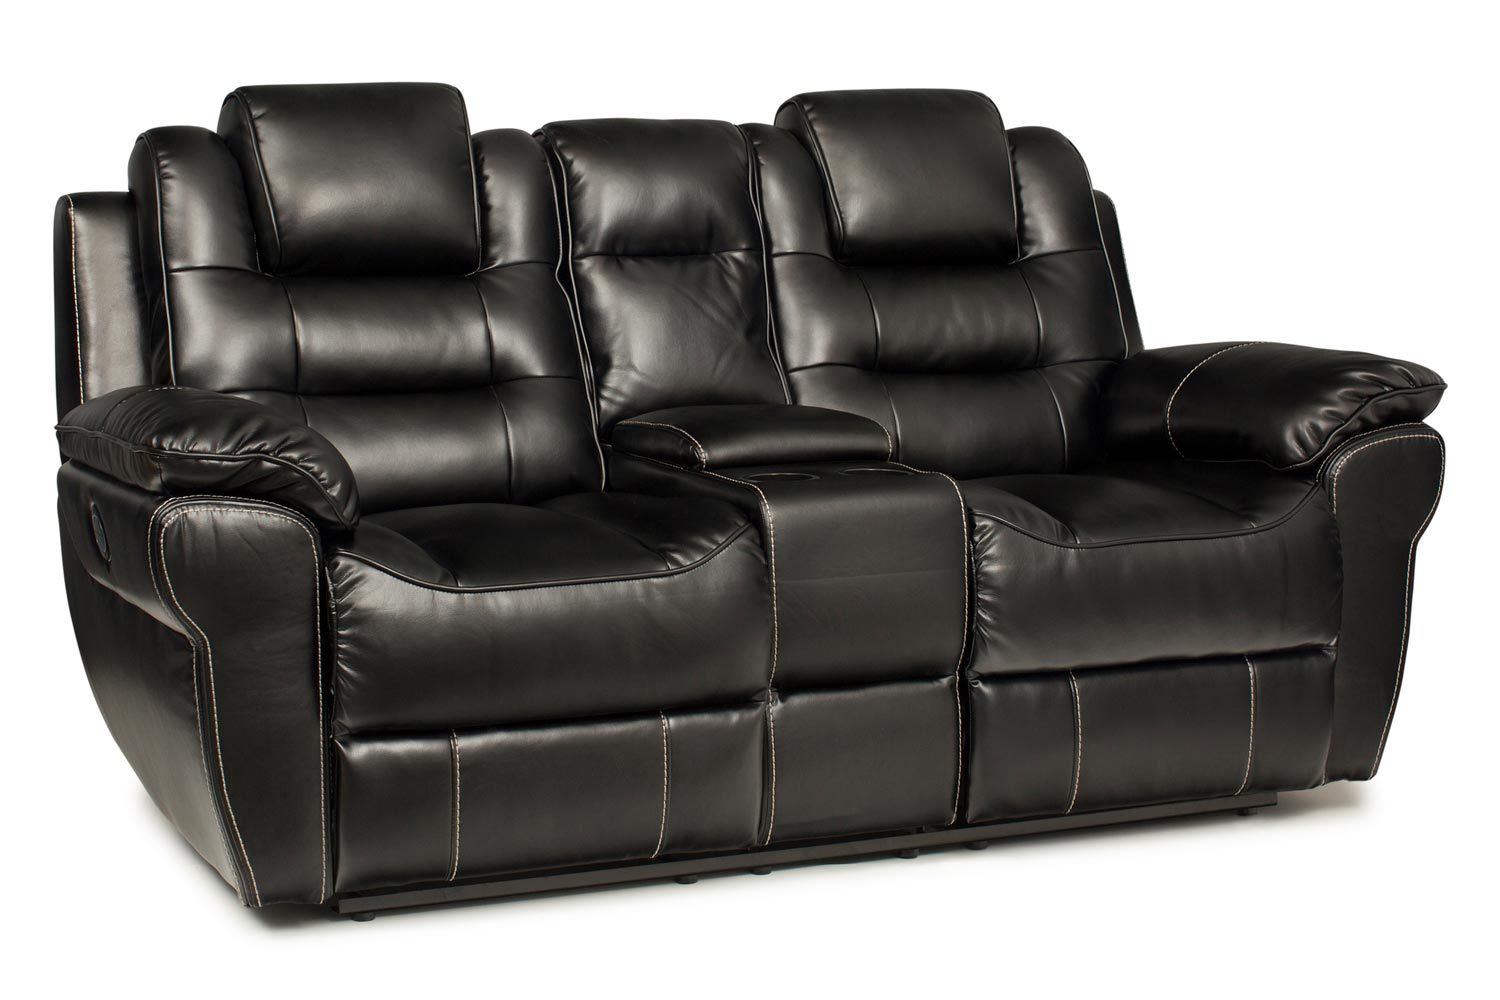 black reclining sofa with console outdoor perth gumtree baxter 2 seater electric recliner ireland